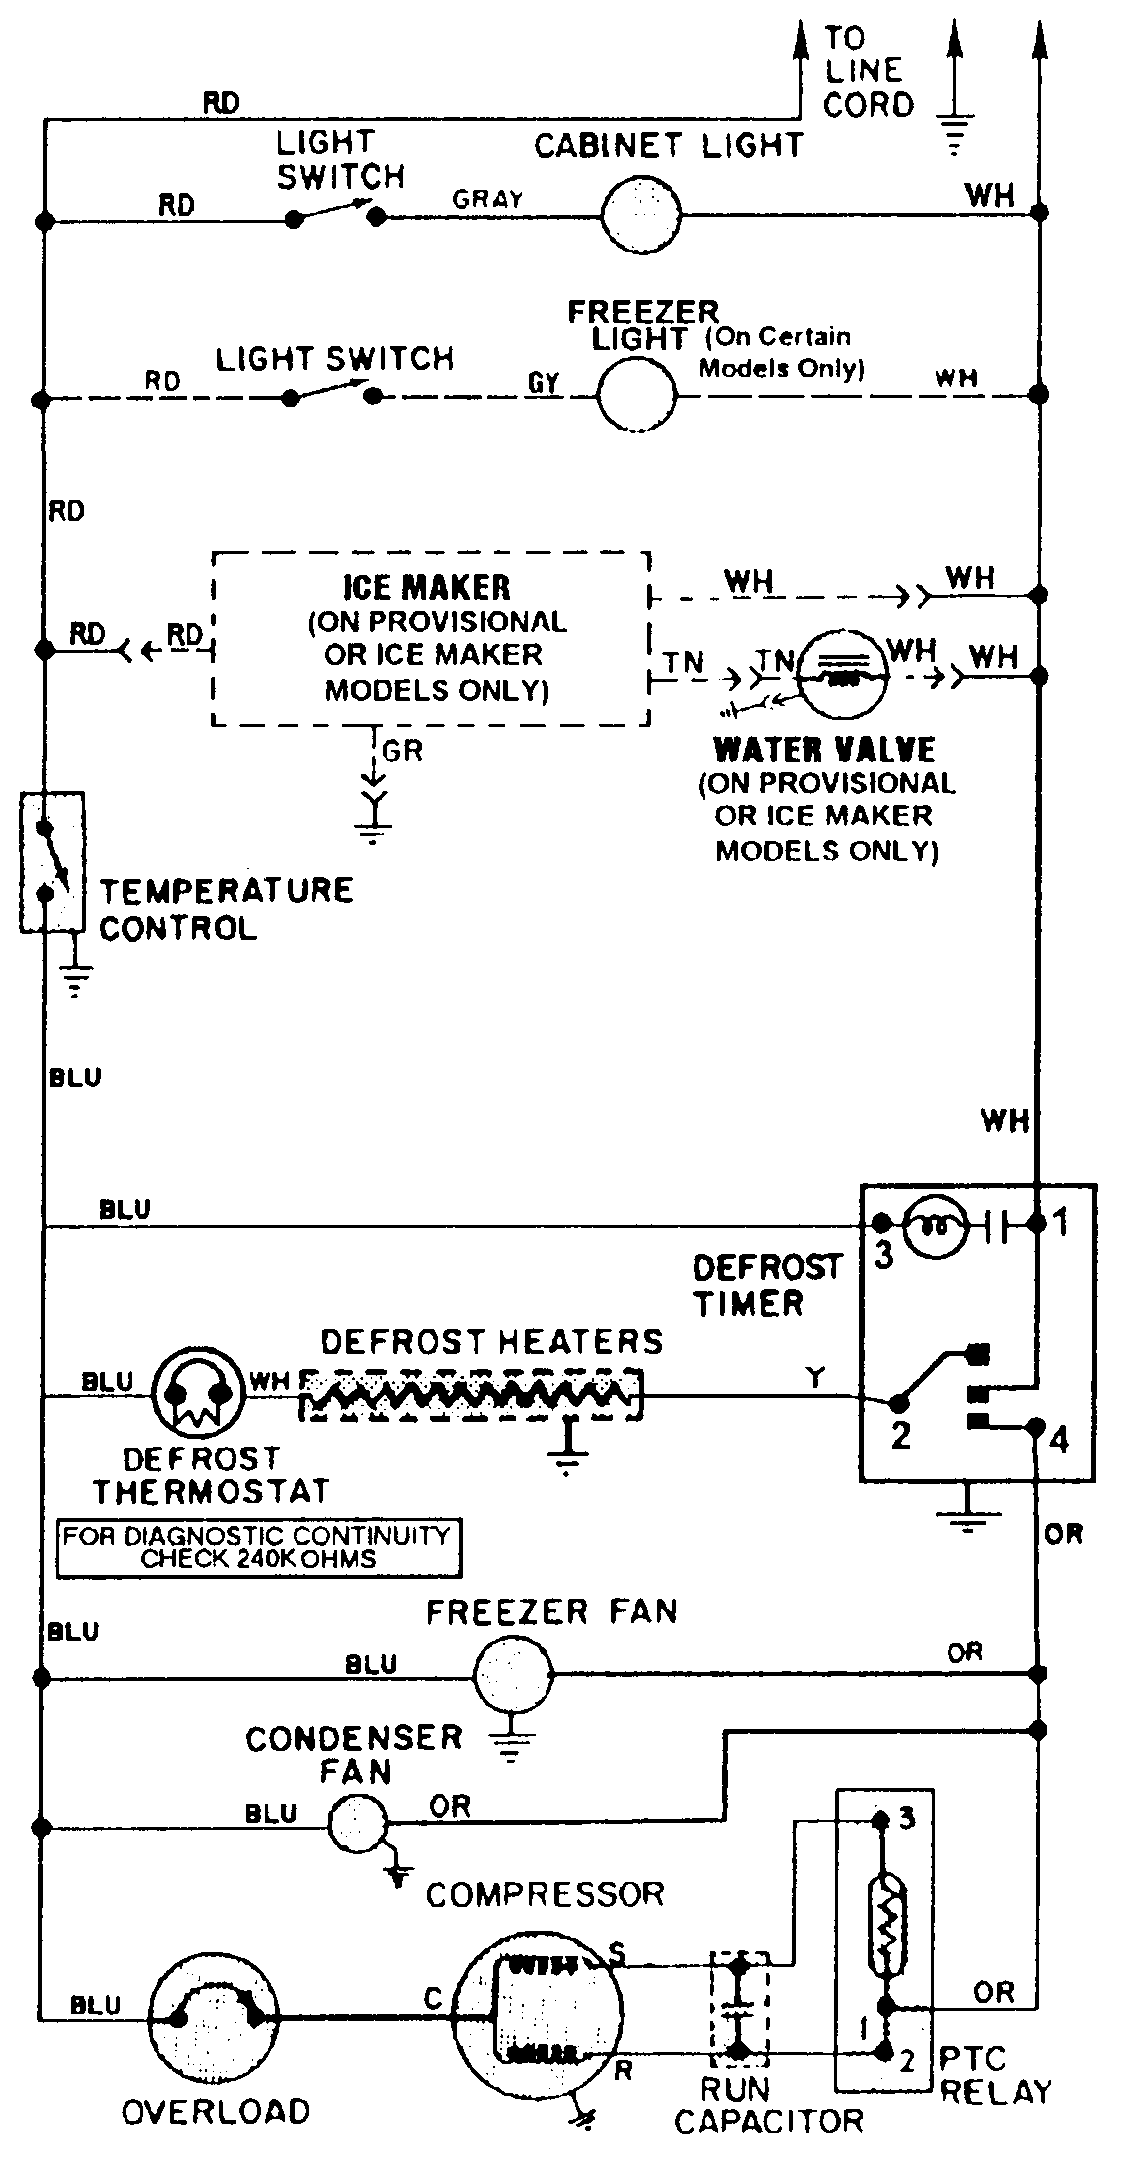 hight resolution of maytag refrigerator compressor wiring diagram